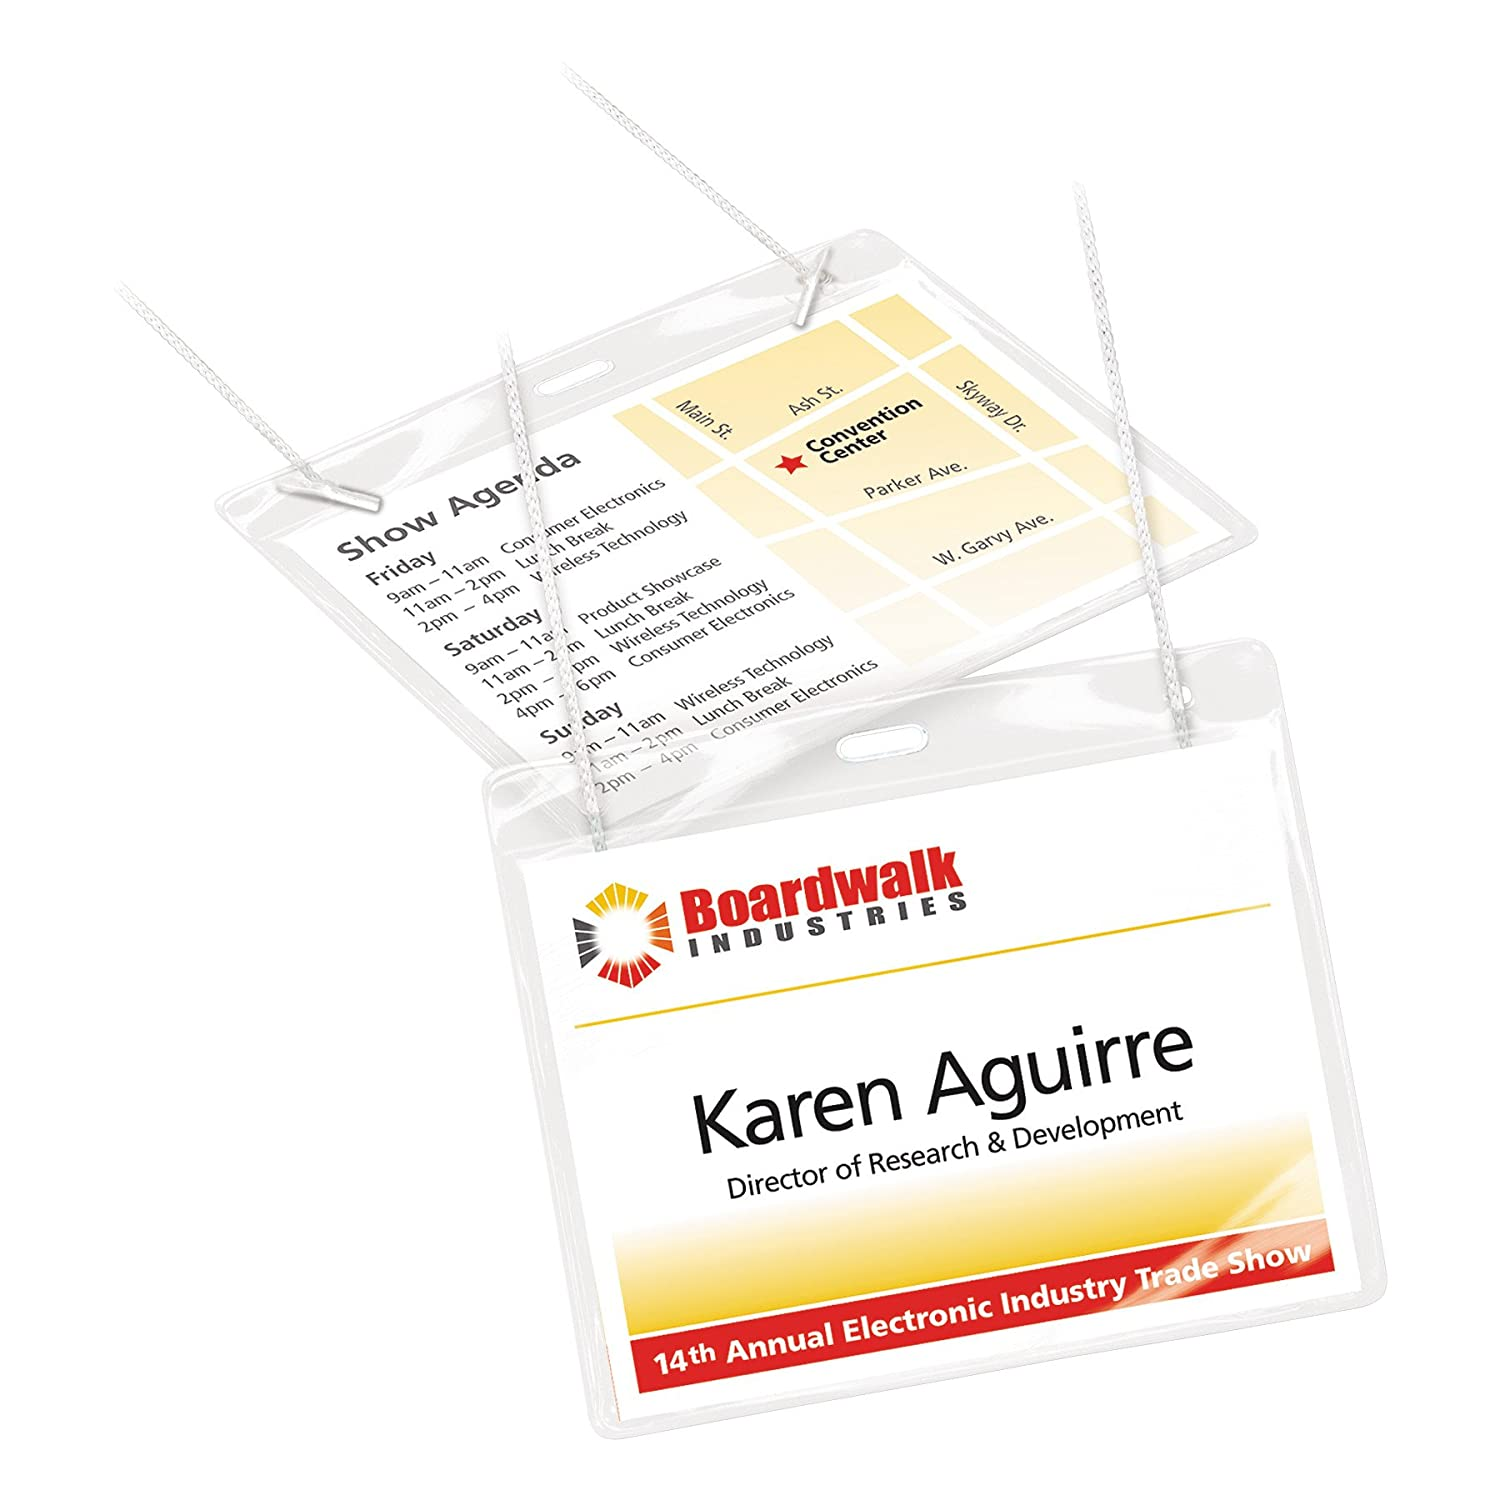 Amazon avery name badges with lanyards print or write 3 x 4 amazon avery name badges with lanyards print or write 3 x 4 badge holders lanyards 50 inserts 74520 name tags on string office products saigontimesfo